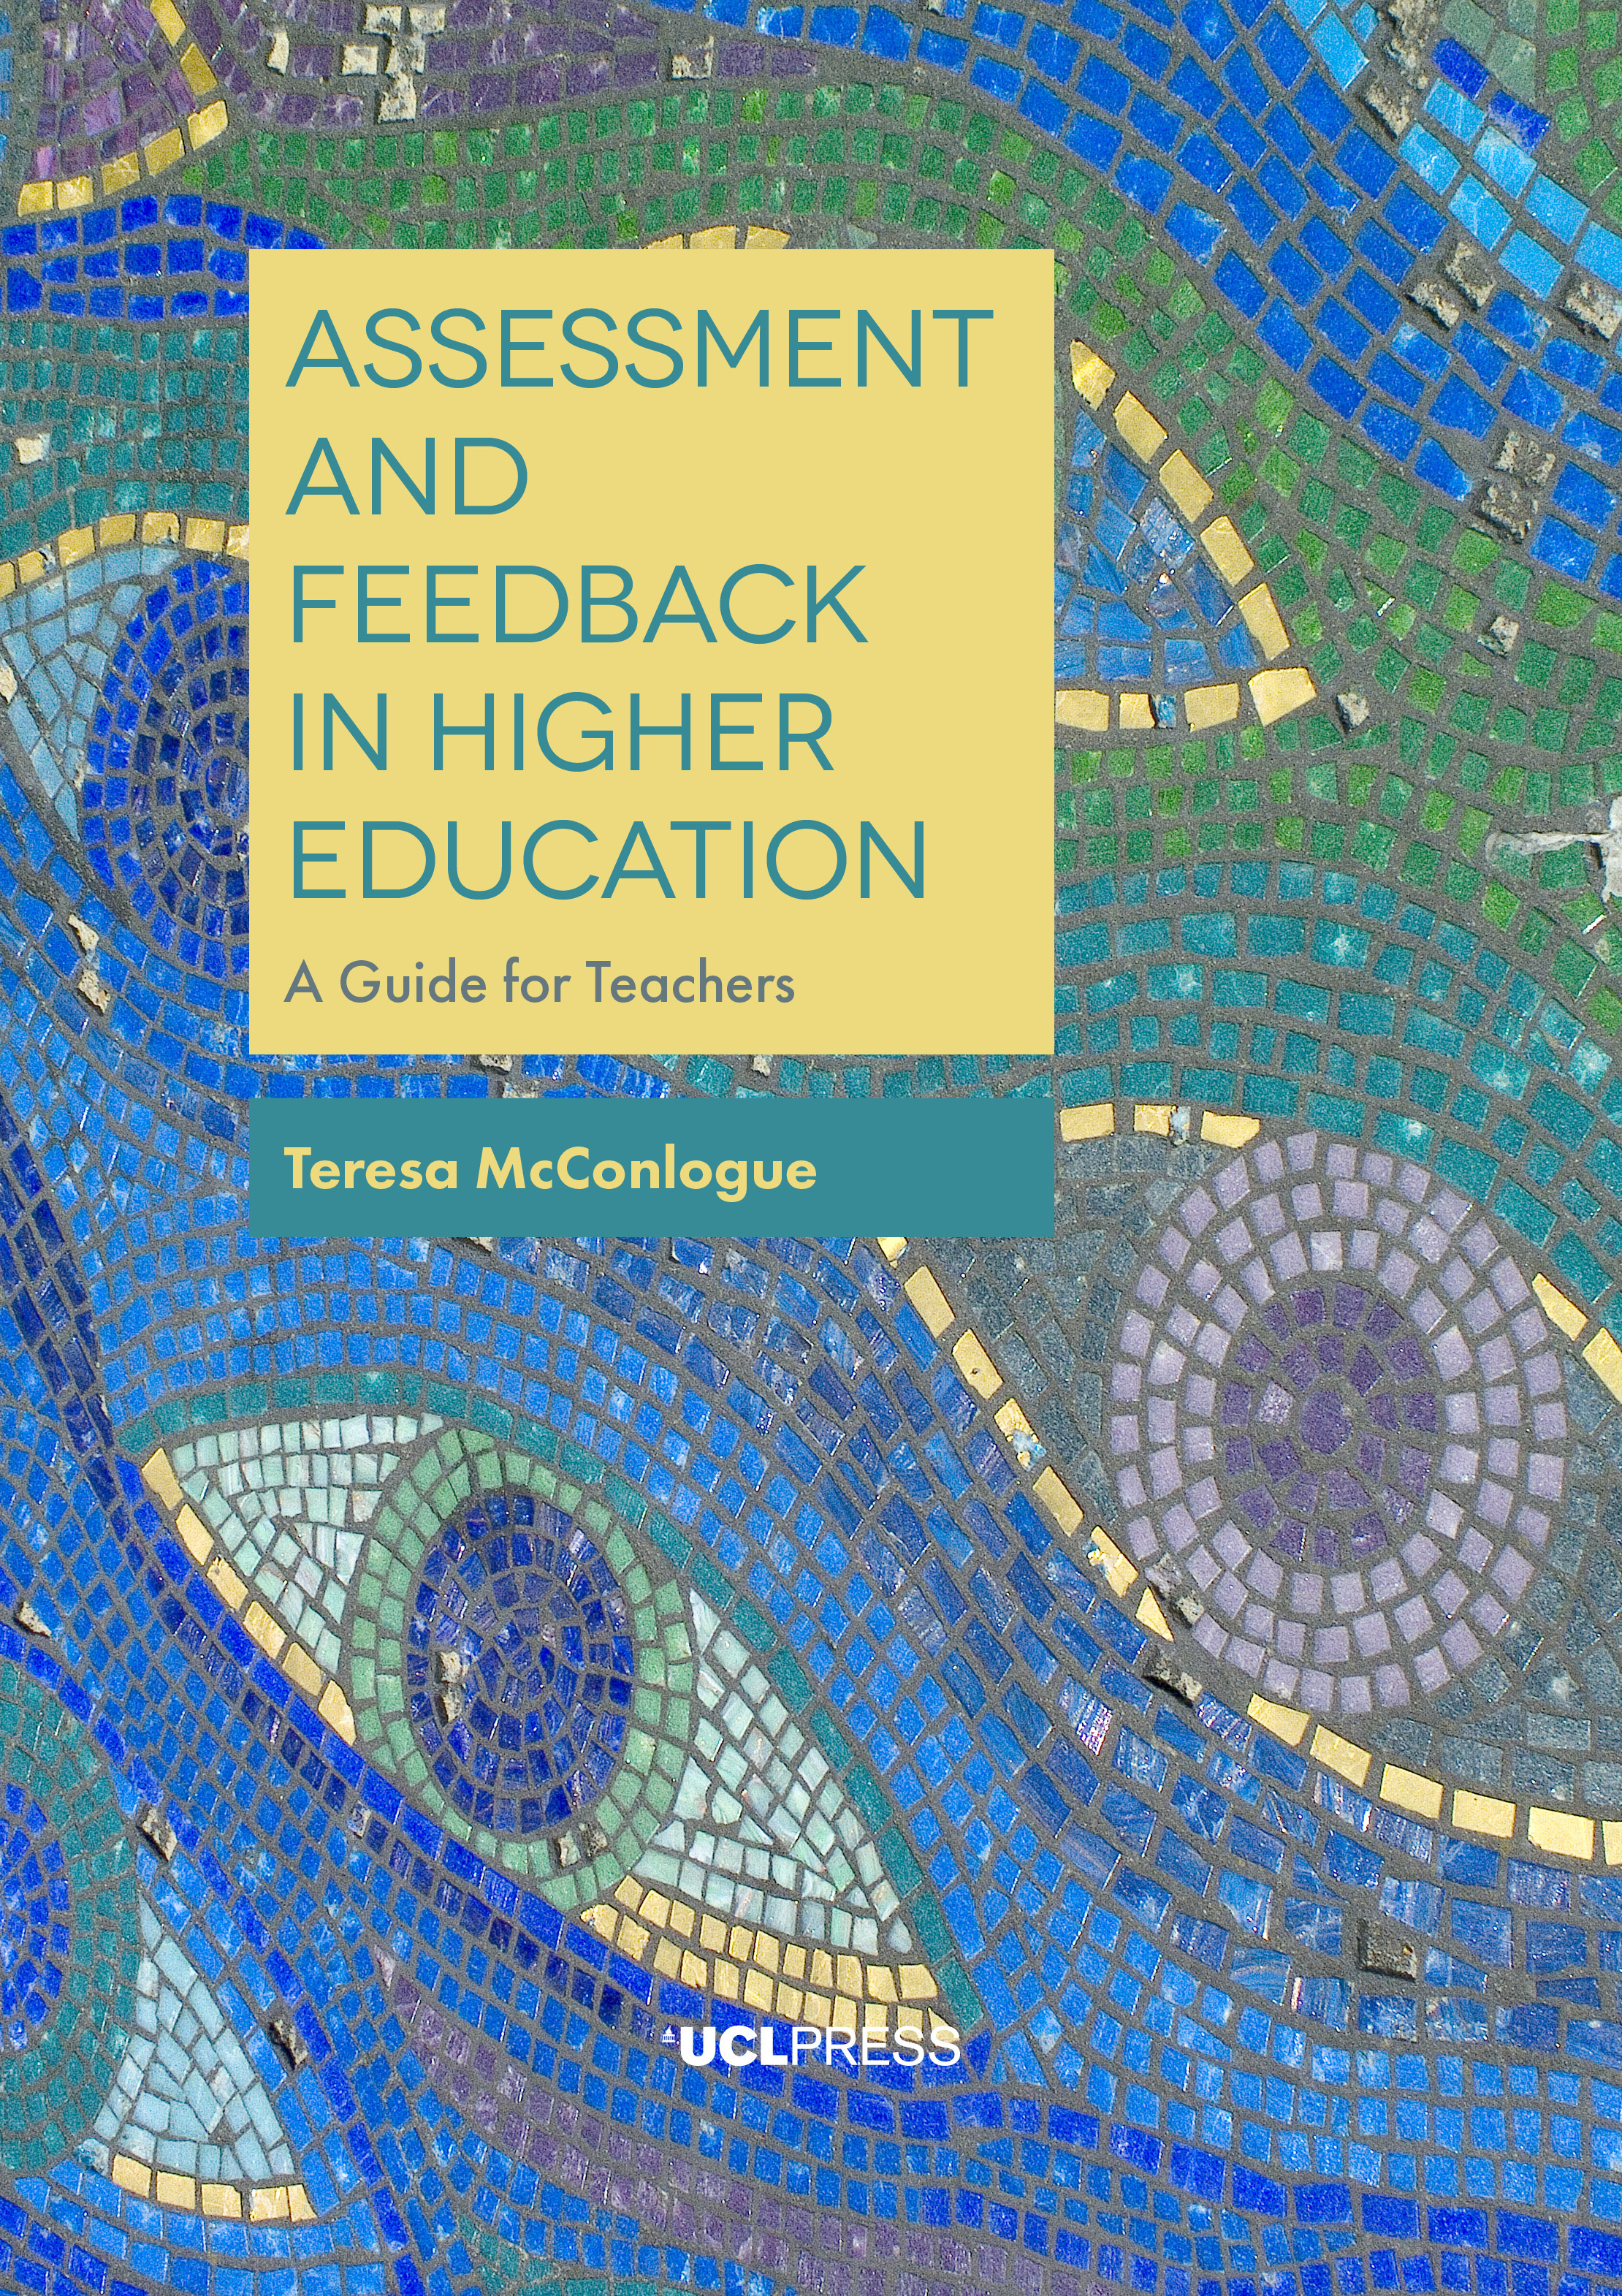 Assessment and Feedback in Higher Education: A Guide for Teachers